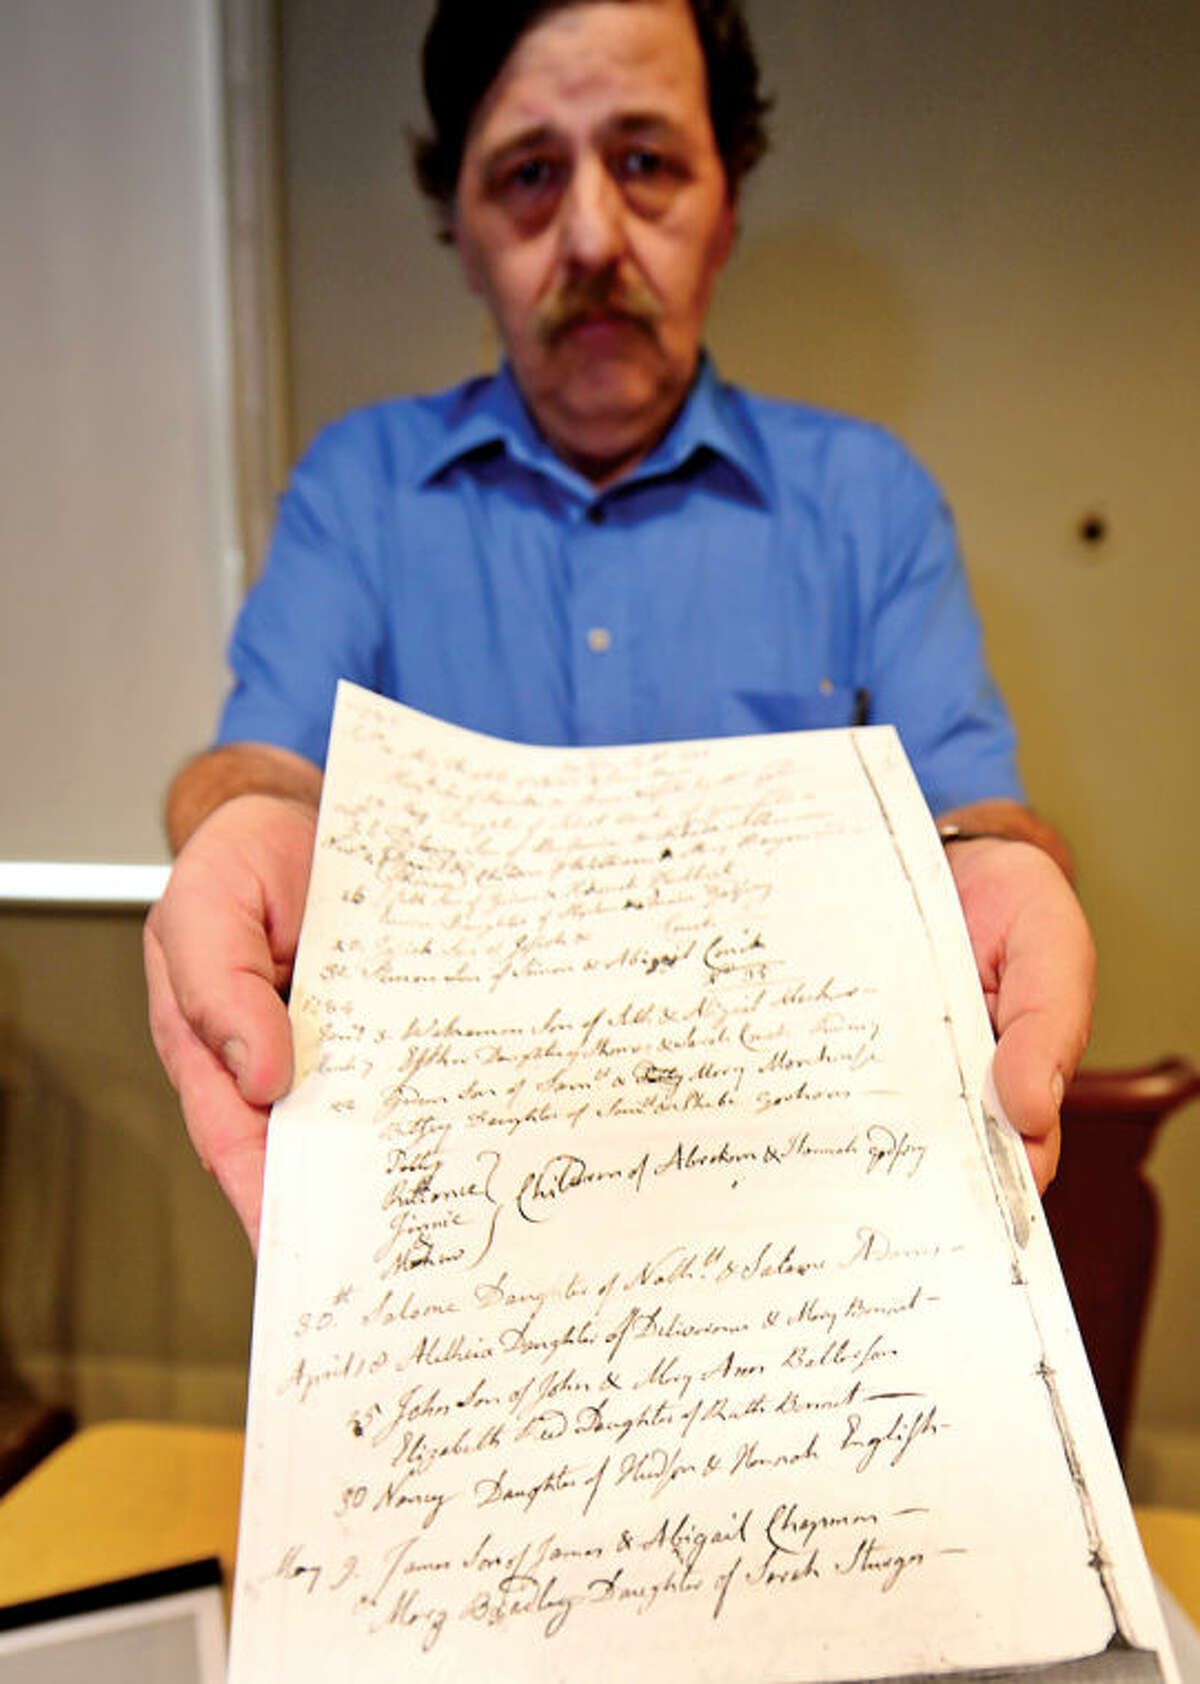 Ed Eckert can trace his lineage back to Richard Olmstead who help found Norwalk back in 1651. Eckert holds a baptism certificate for Delancey Allen from 1783, part of his Norwalk lineage.